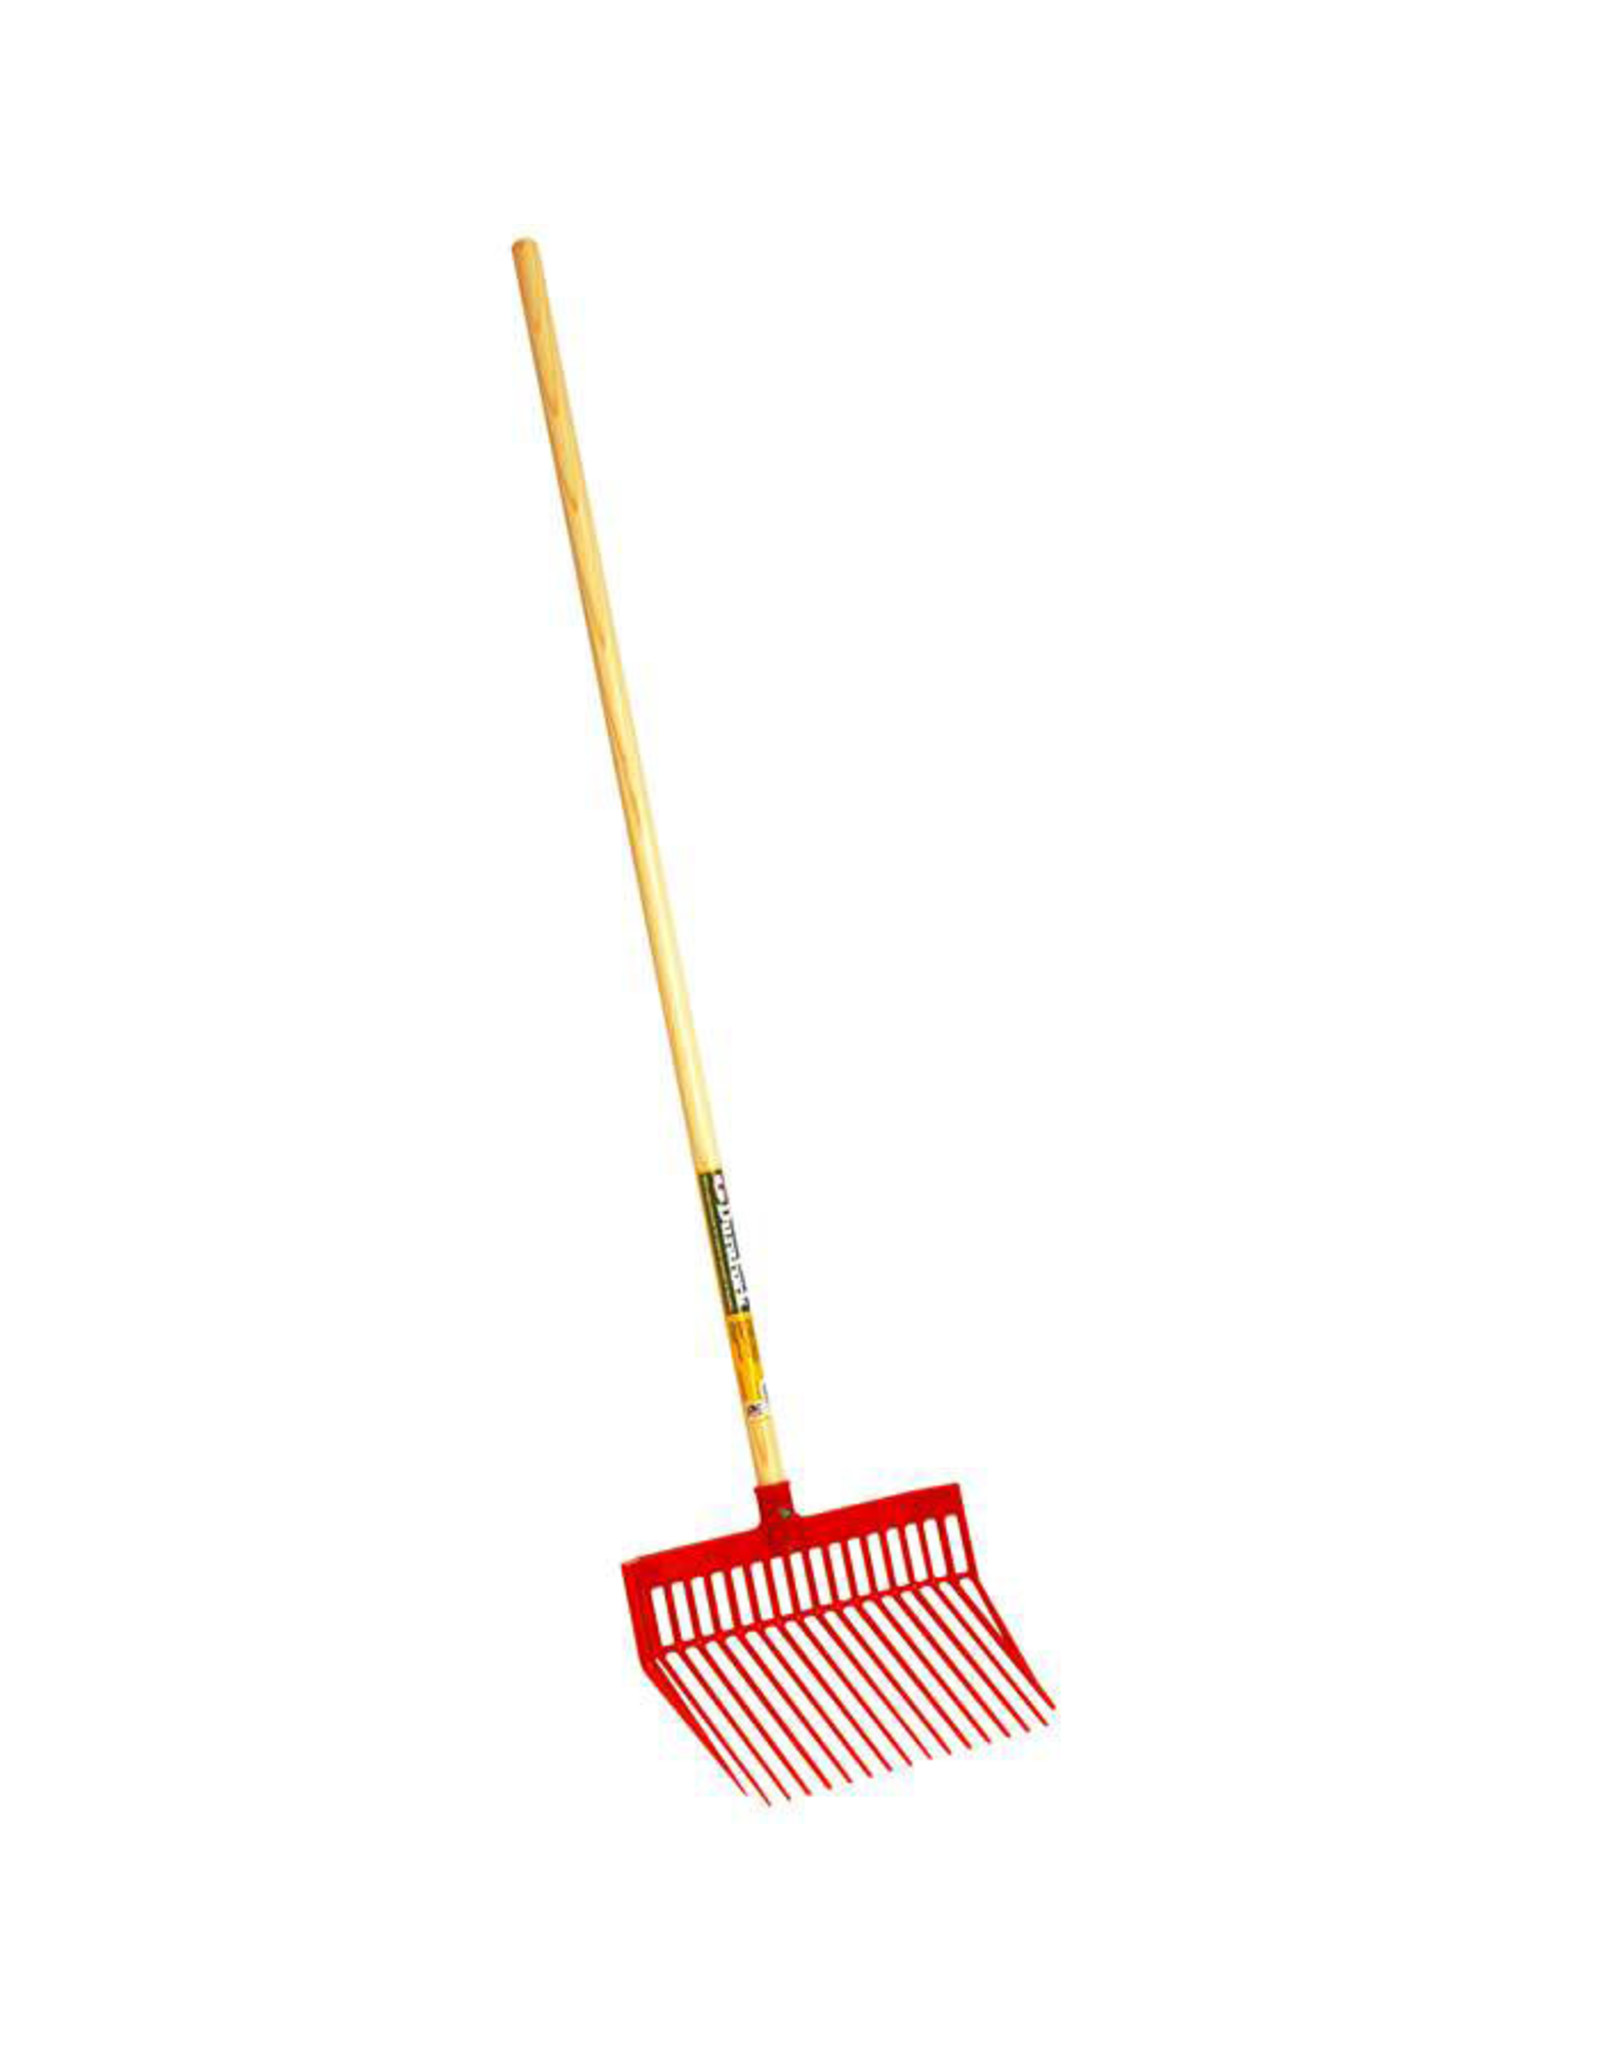 Assorted  DuraFork - Plastic DuraForks are ideal stall cleaners with specially designed tines uniquely angled to provide for easy manure pickup without spilling. Fork head is molded from an engineered grade polycarbonate.  115-215